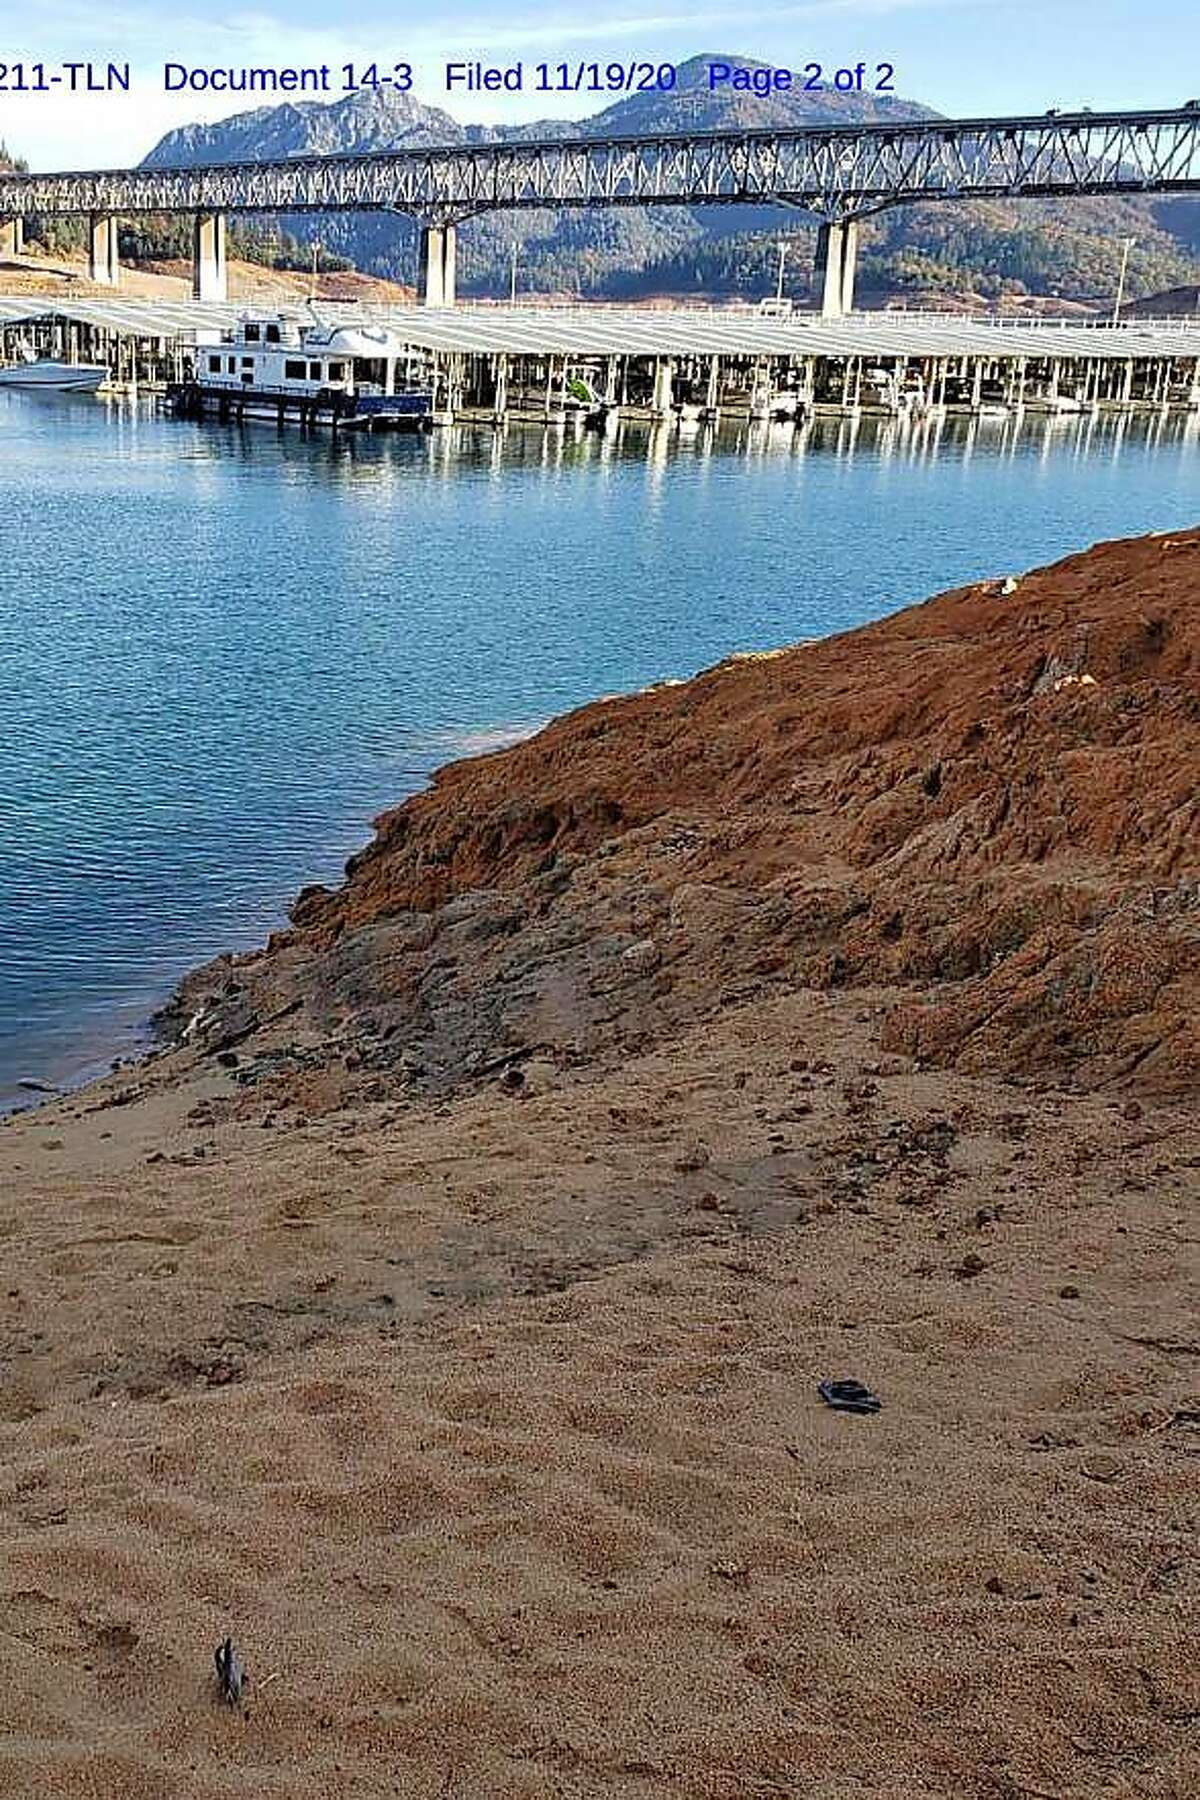 Prosecutors believe Matthew Piercey, who is charged with running a $36 million Ponzi scheme, entered Lake Shasta on this shoreline after they found one of his flip-flops (lower right) nearby and tried to flee federal agents using a submersible device.